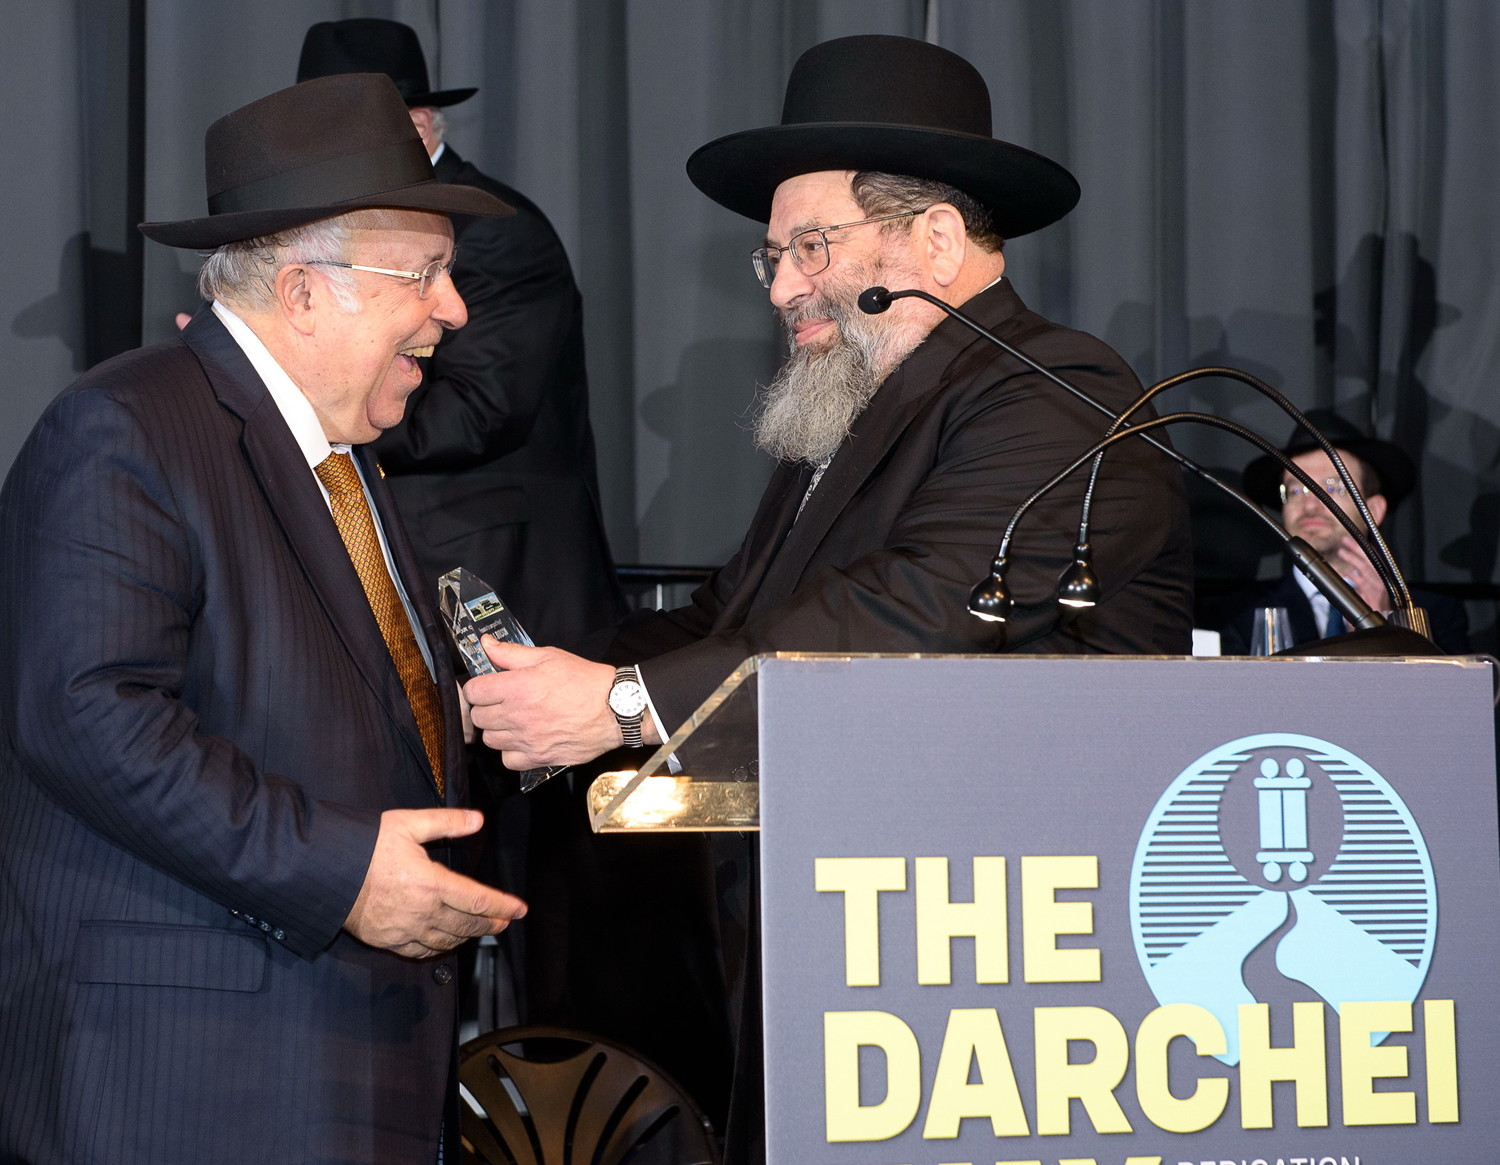 Rabbi Yaakov Bender makes a surprise presentation to Rabbi Lloyd Keilson, co-chairman of the YDT board, in recognition of his tireless efforts on the school's mortgage refinance.